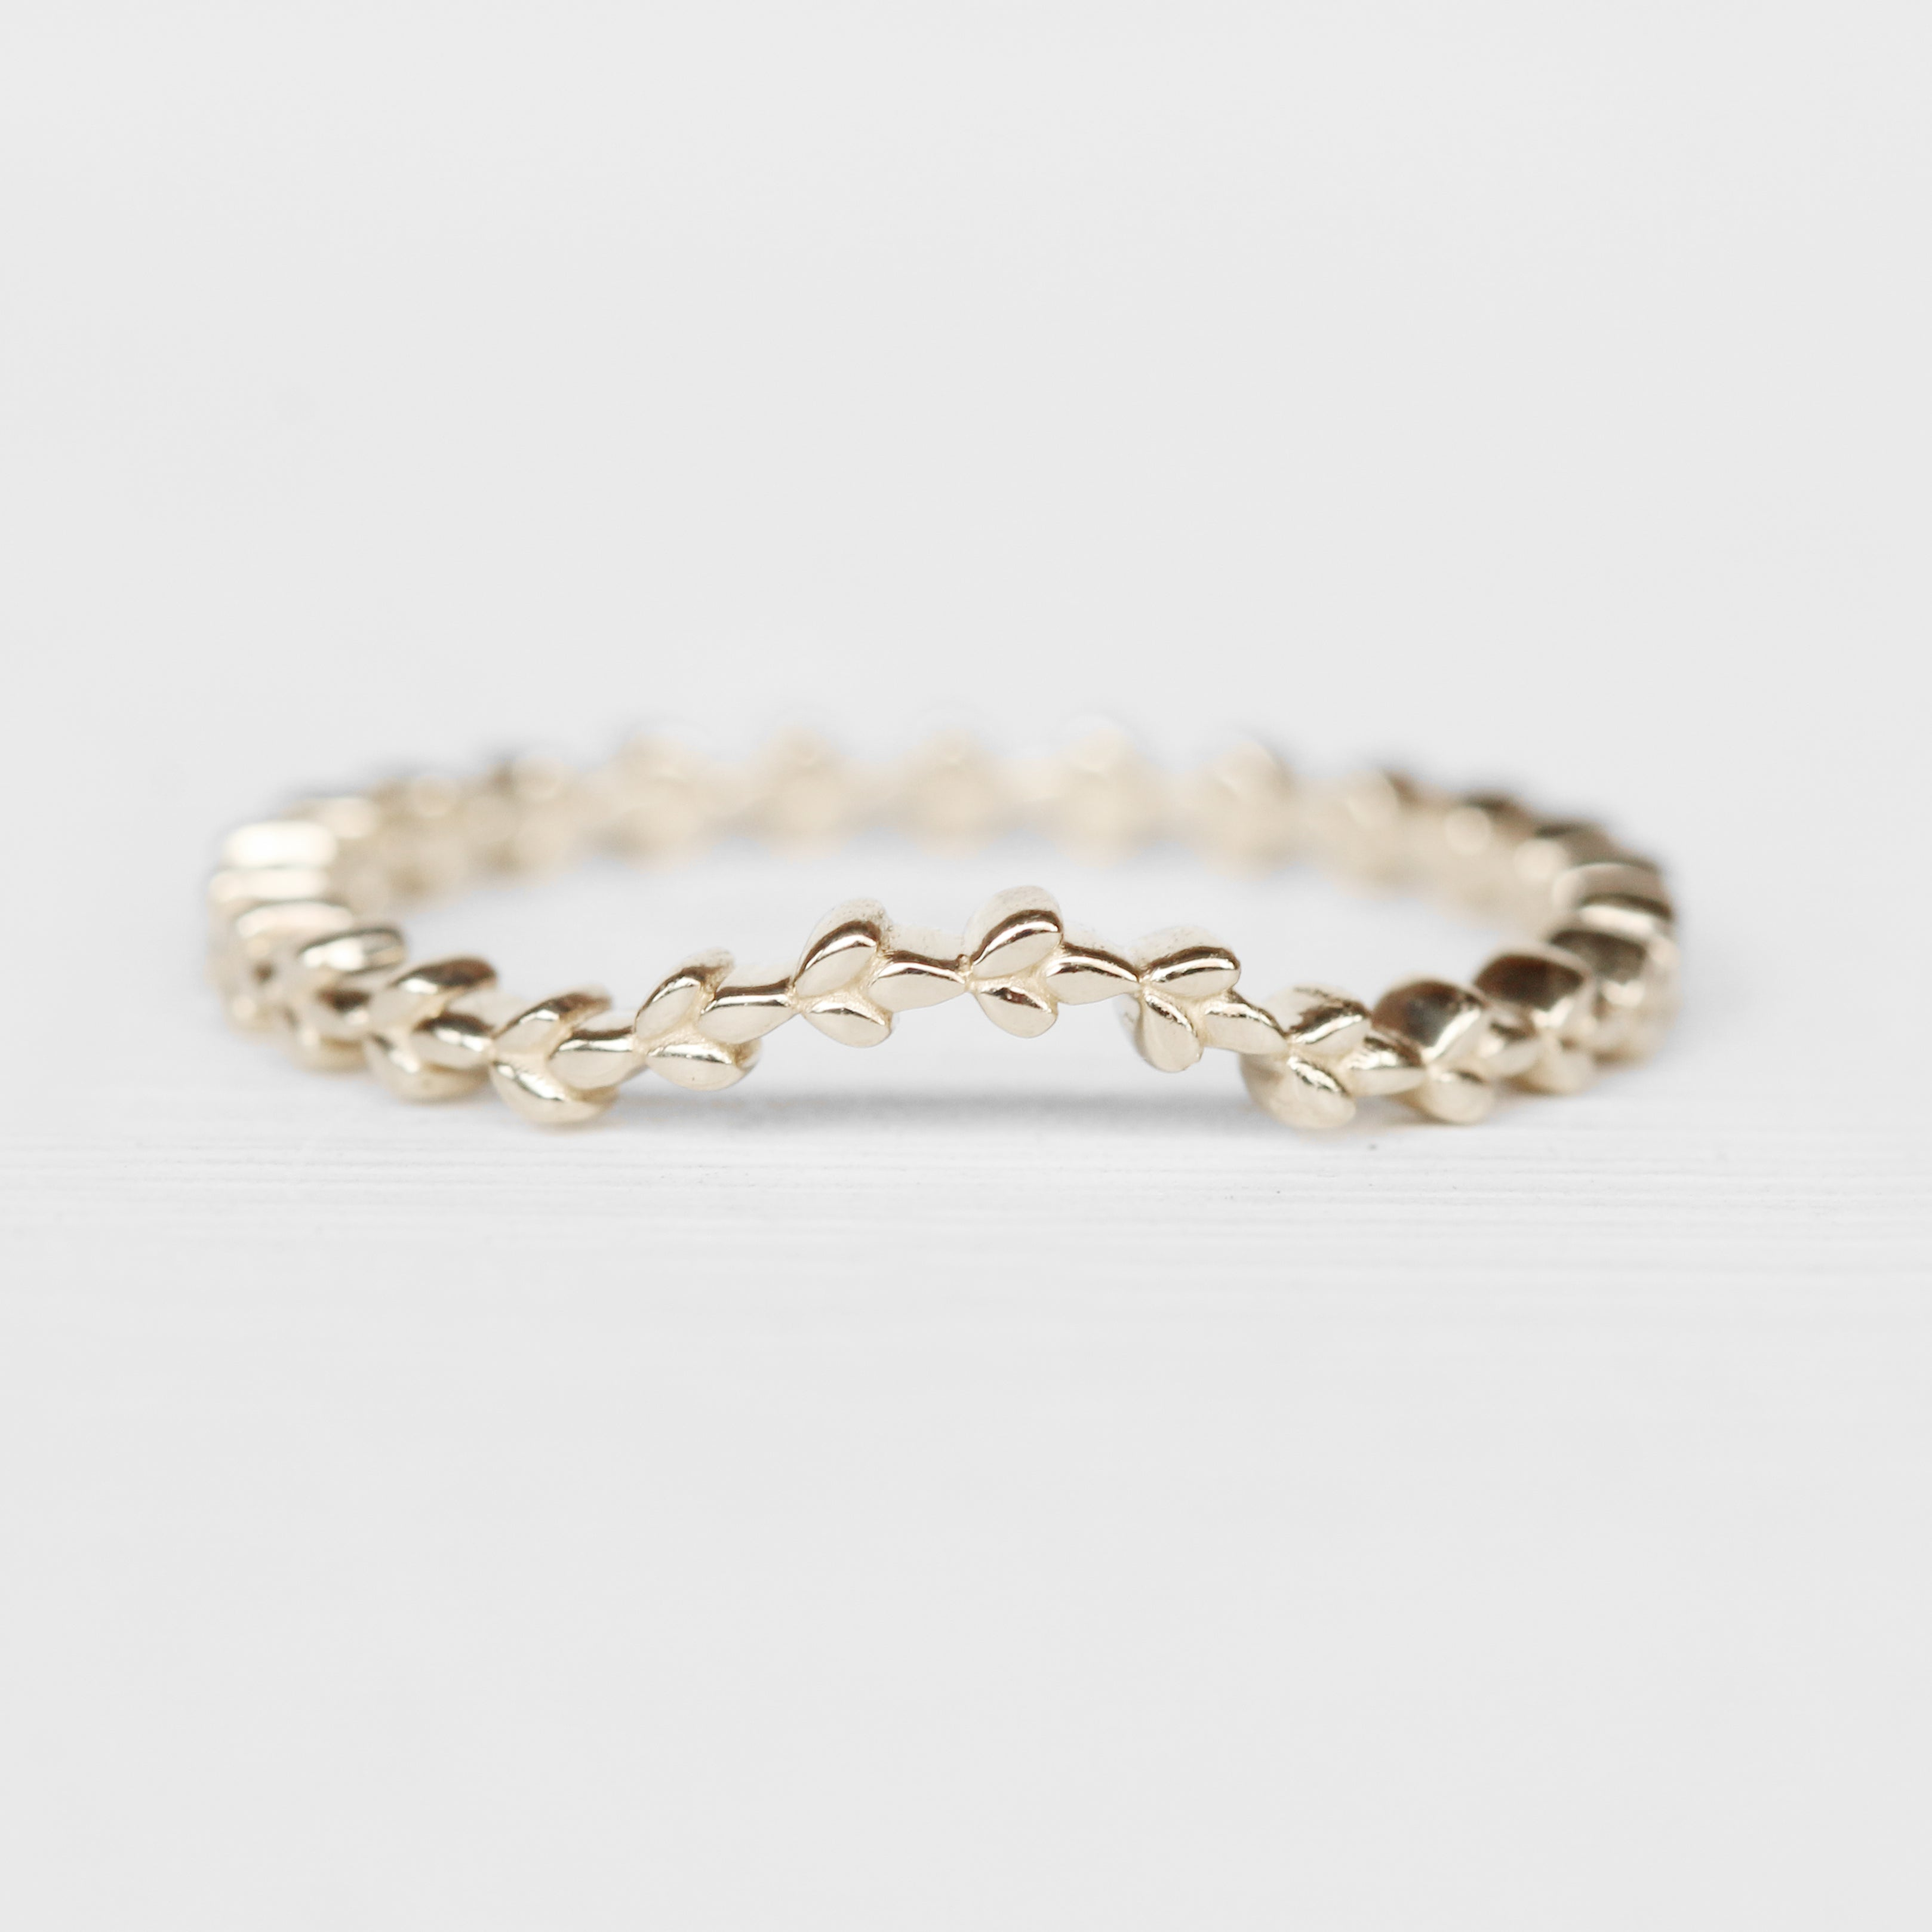 June - Floral leaf Contoured Wedding Stacking Band in Your Choice of 14K Gold - Celestial Diamonds ® by Midwinter Co.